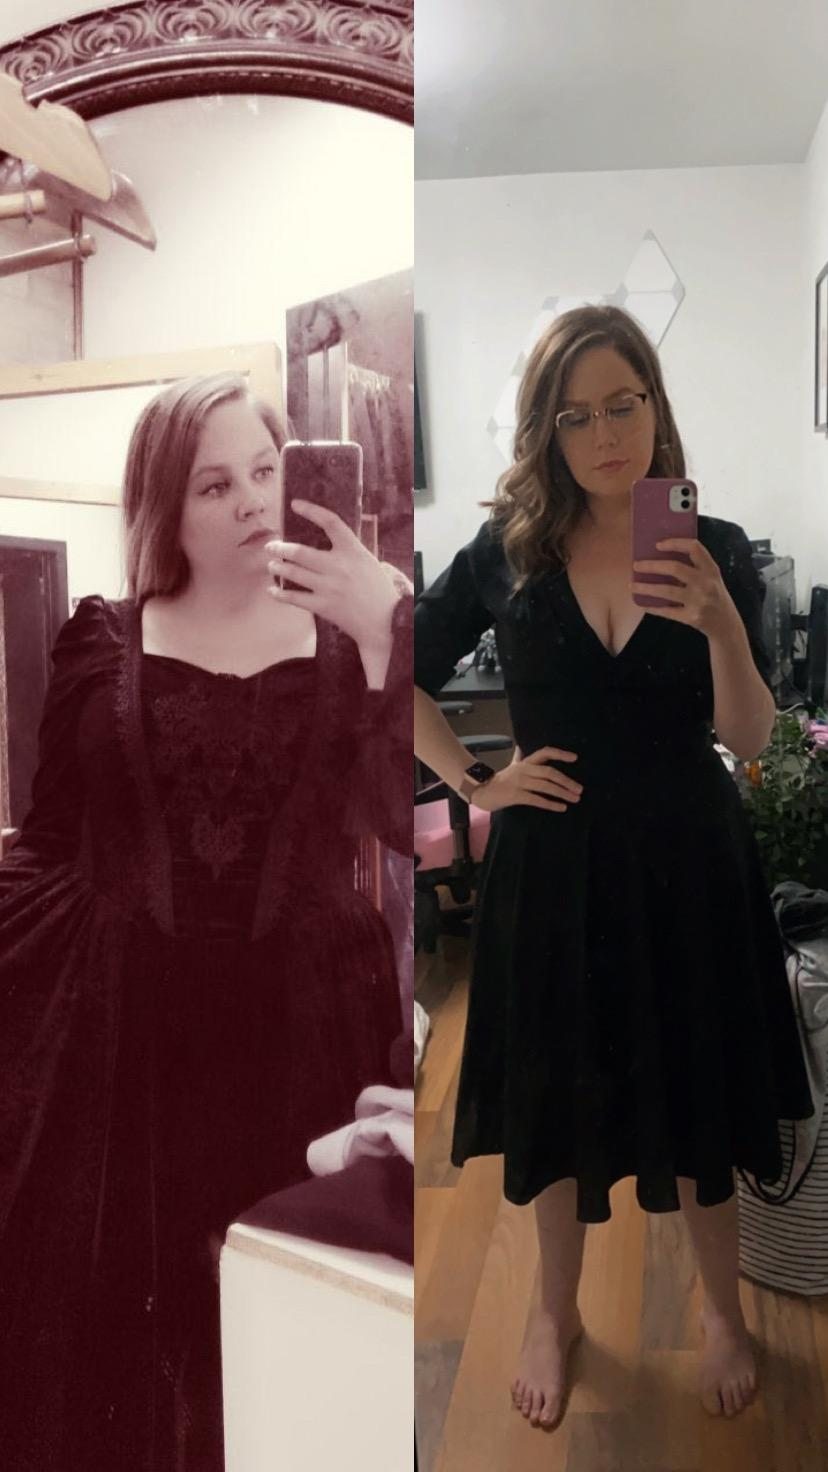 35 lbs Weight Loss Before and After 5 foot 4 Female 170 lbs to 135 lbs